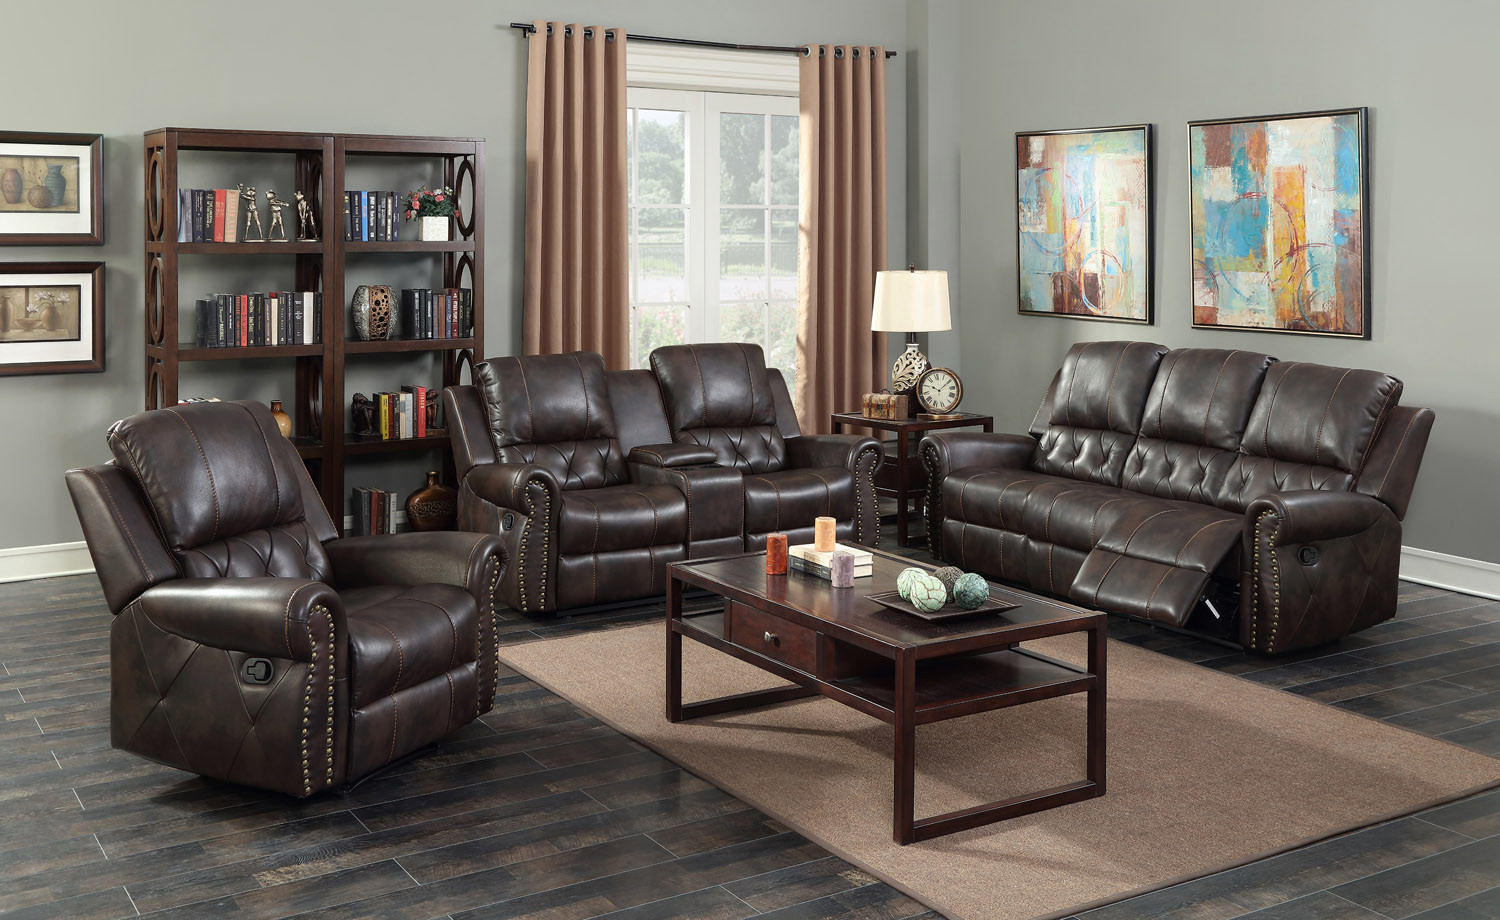 Bravo 3 Pc Leather Reclining Sofa, Loveseat and Recliner